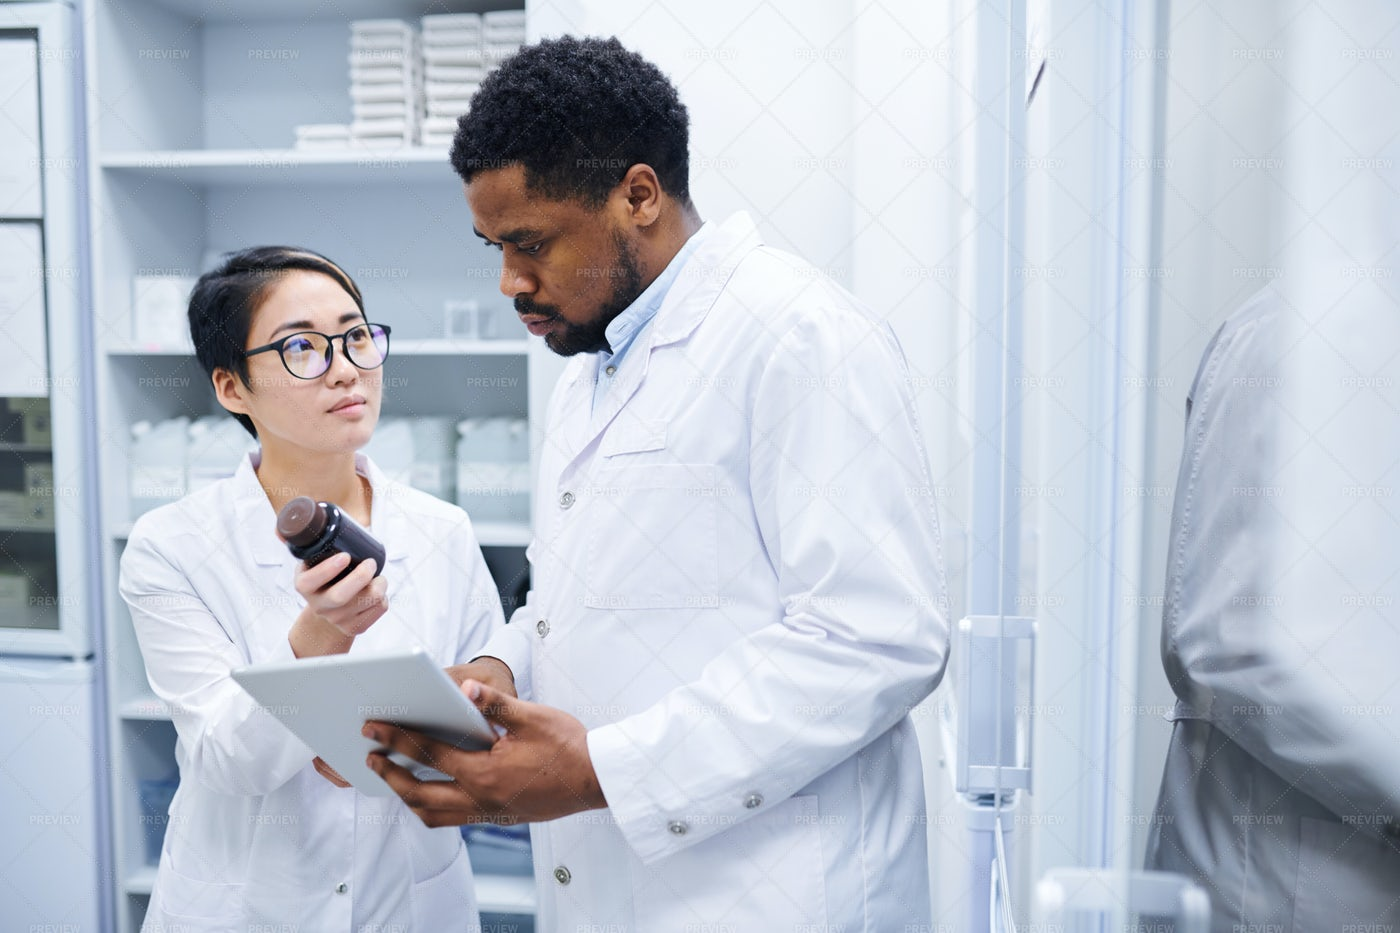 Medical Assistant Asking Doctor...: Stock Photos